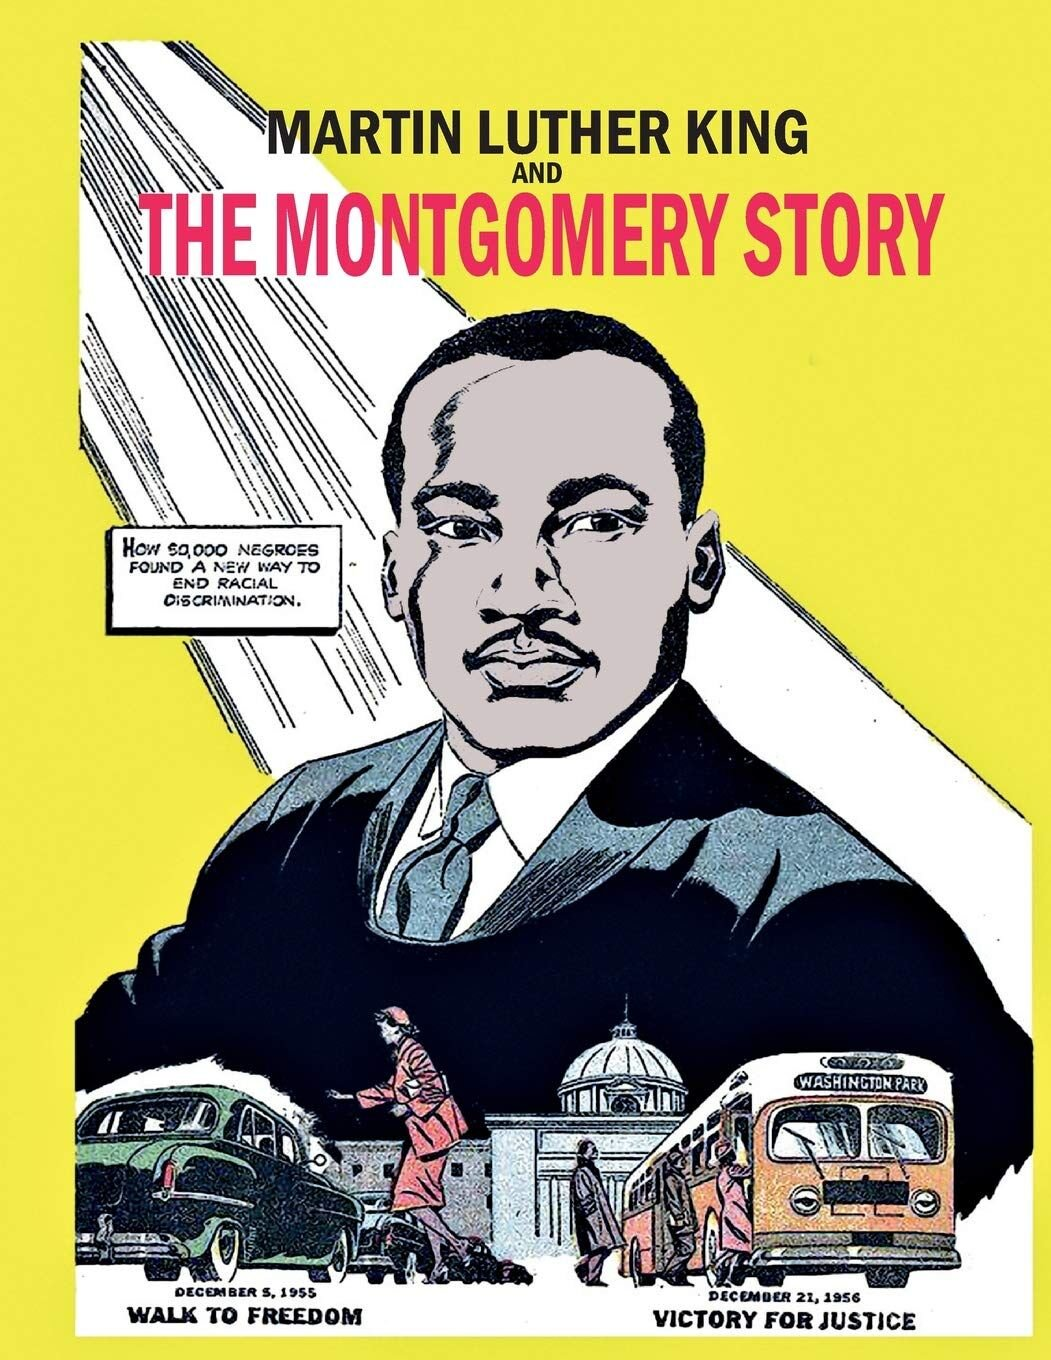 Martin Luther King and the Montgomery Story - 1958